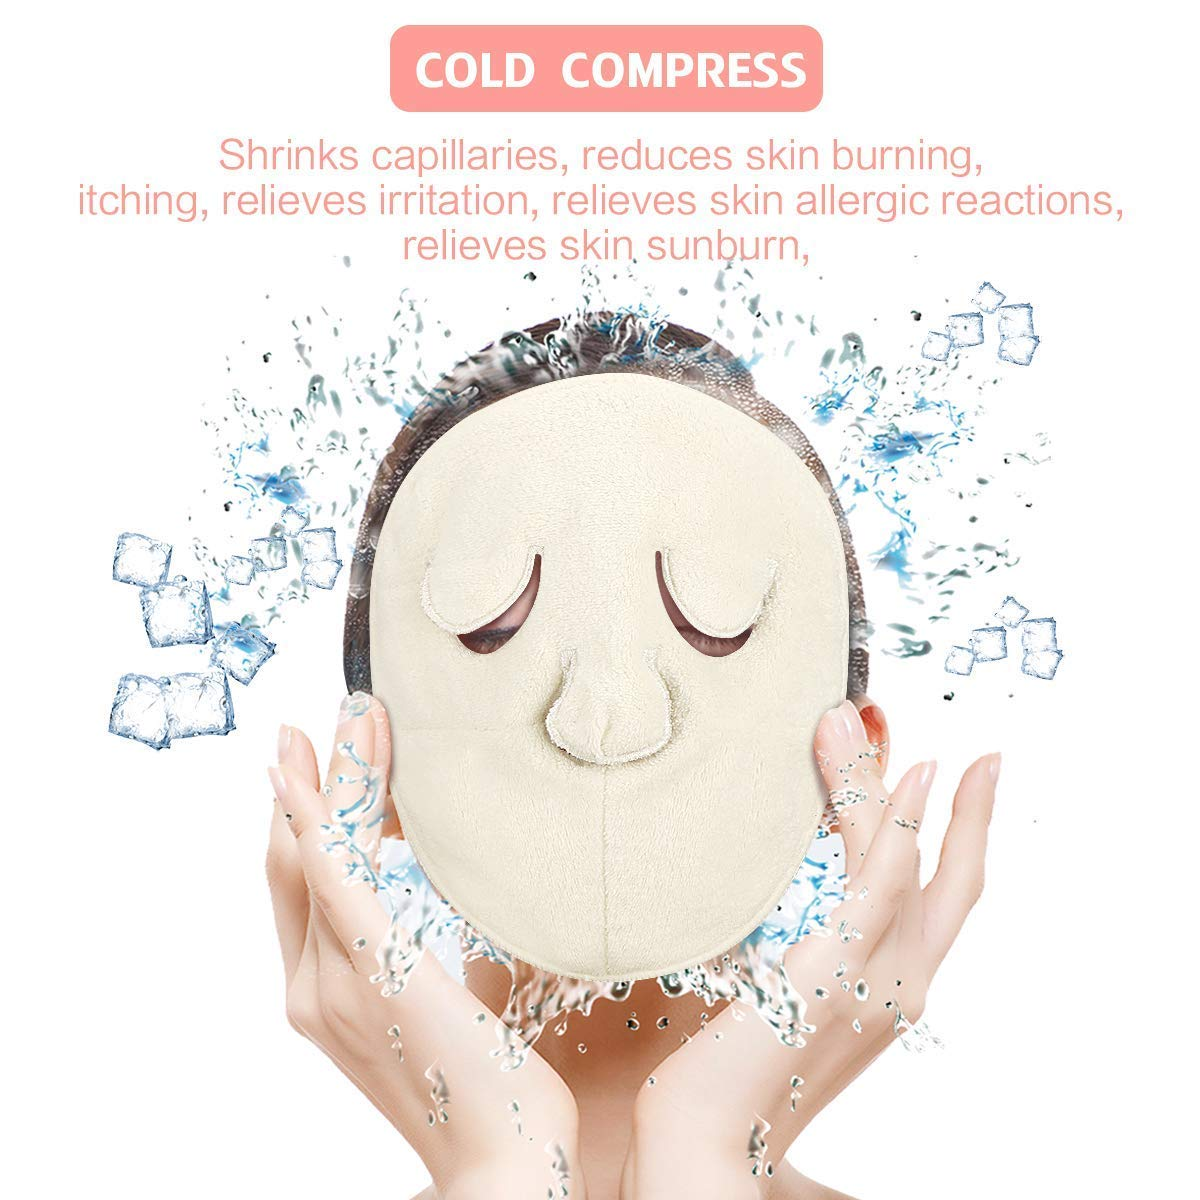 Face Towel Mask Reusable Face Steamer Towel Hot and Cold Compress Moisturizing Anti Anging Skin Rejuvenation Facial Skin Care Mask